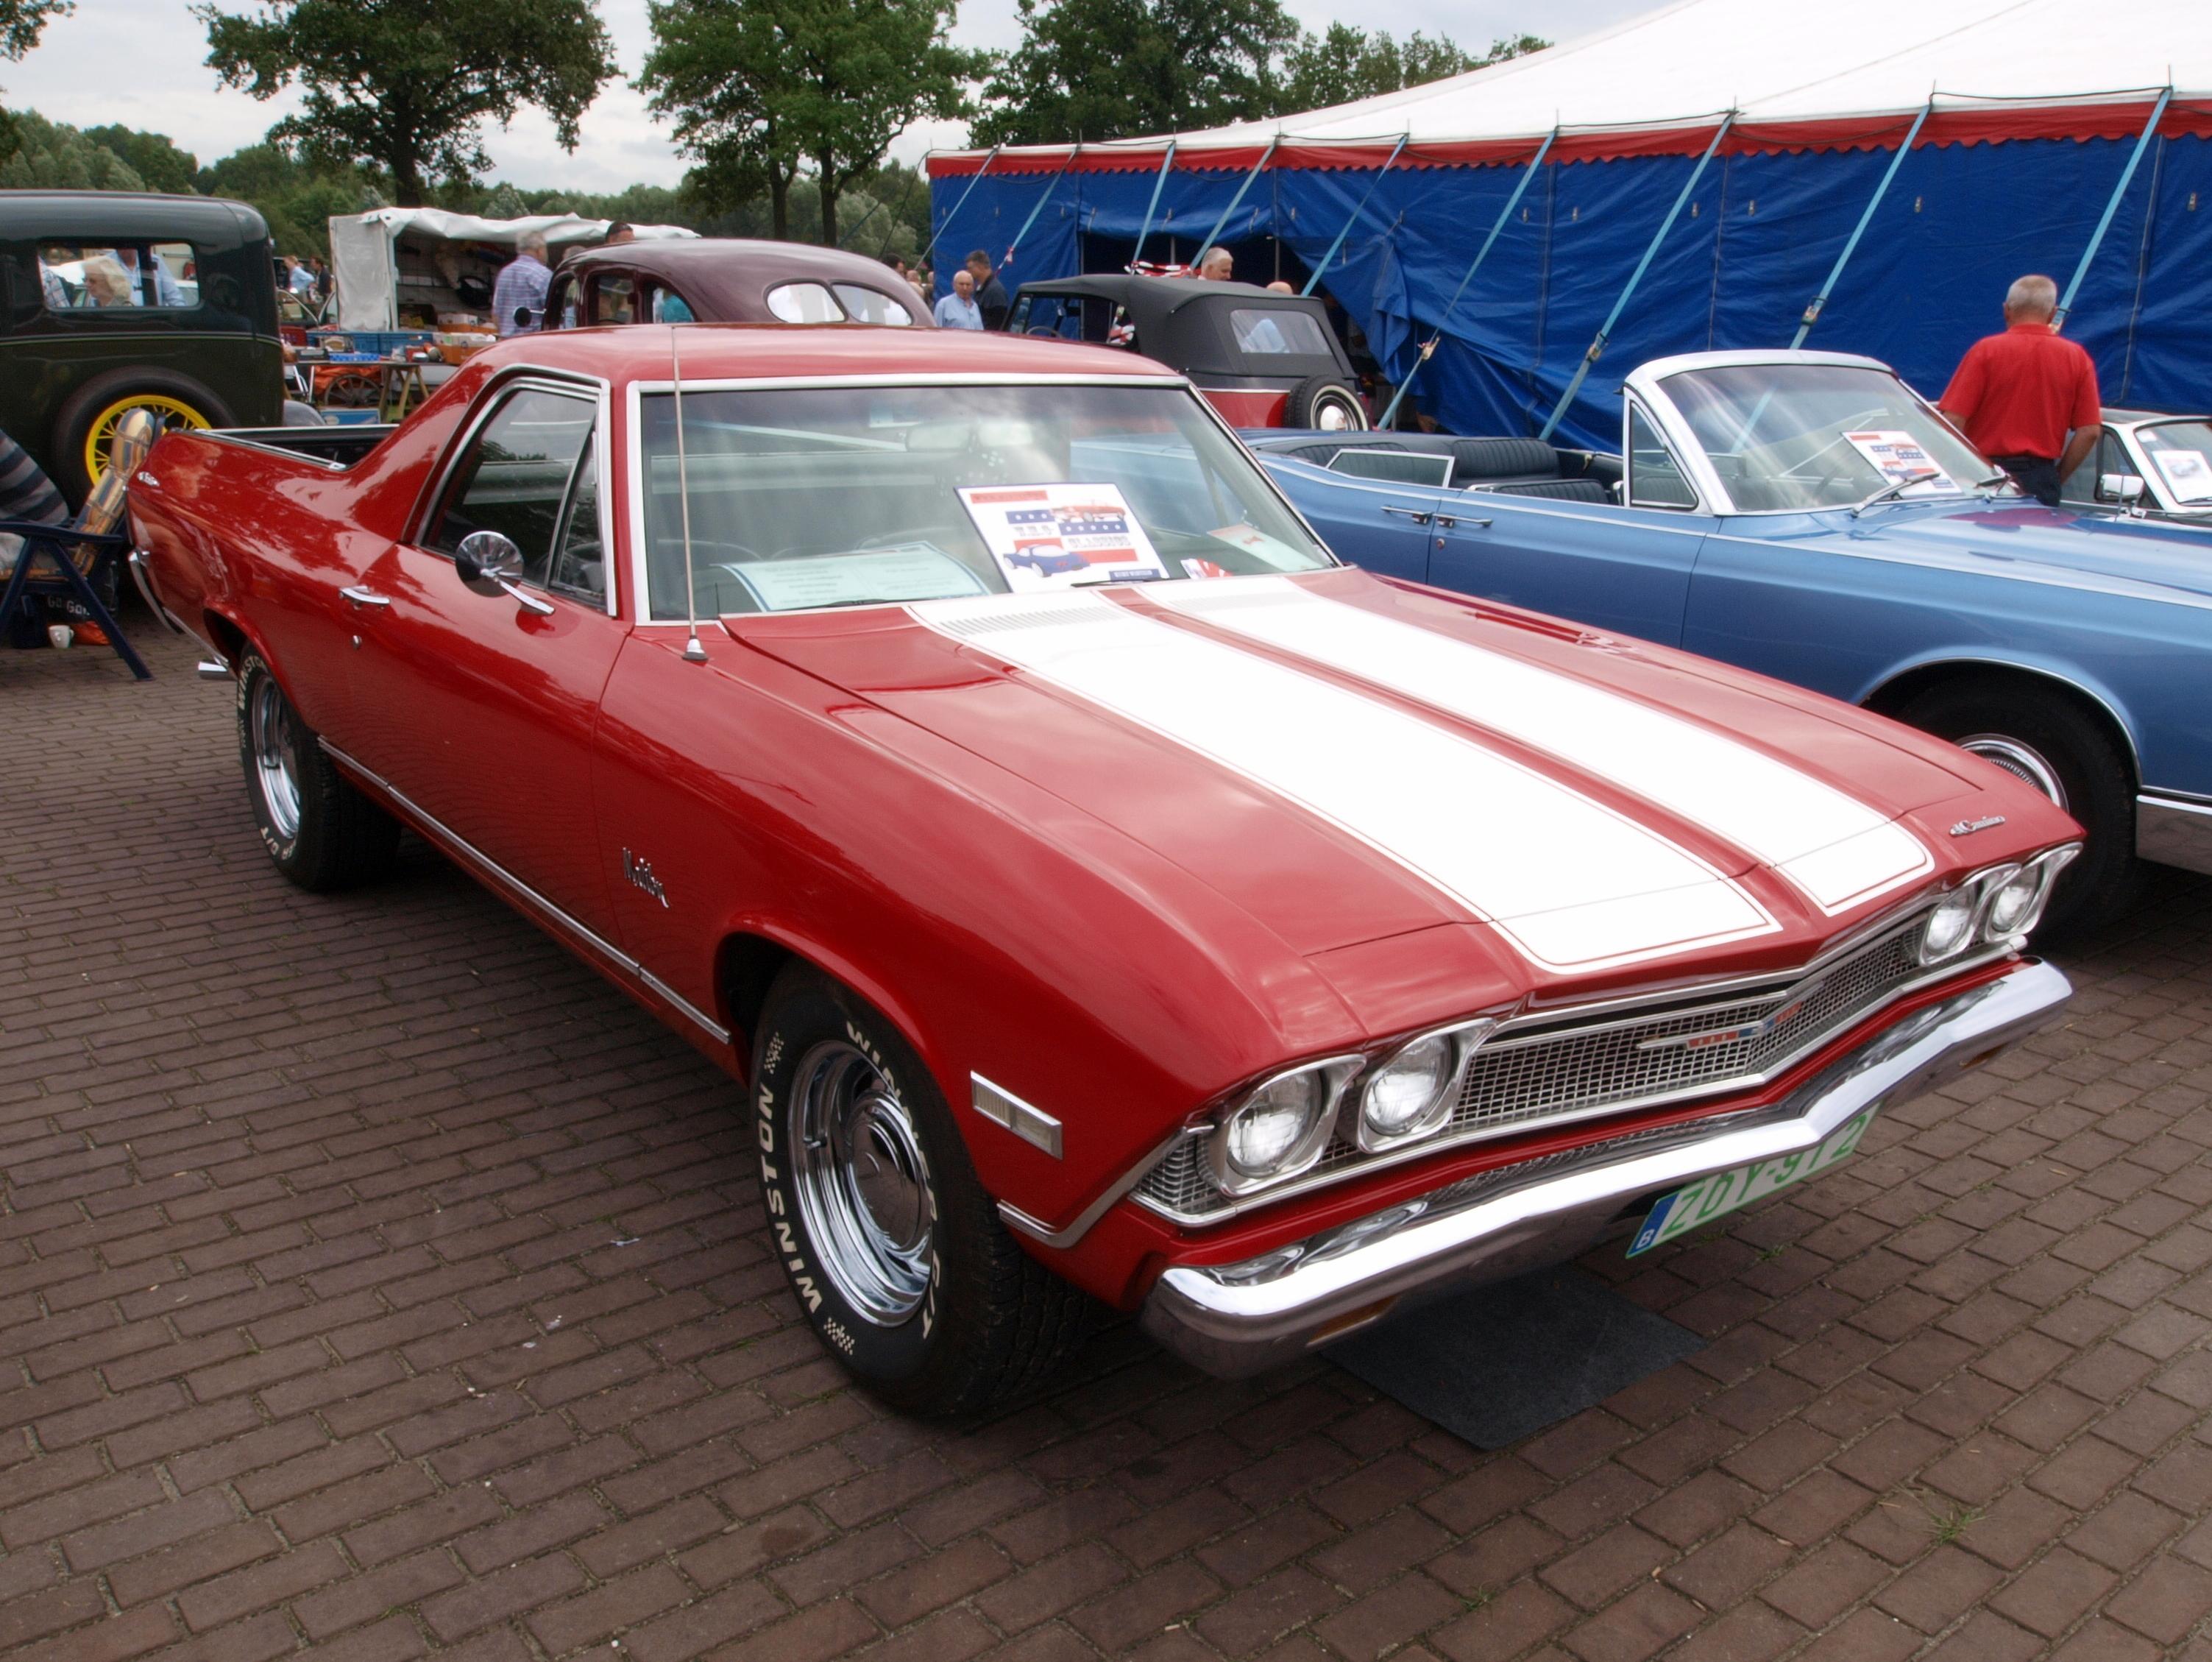 File:Chevrolet El Camino, Belgian licence registration ZDY-912 pA ...